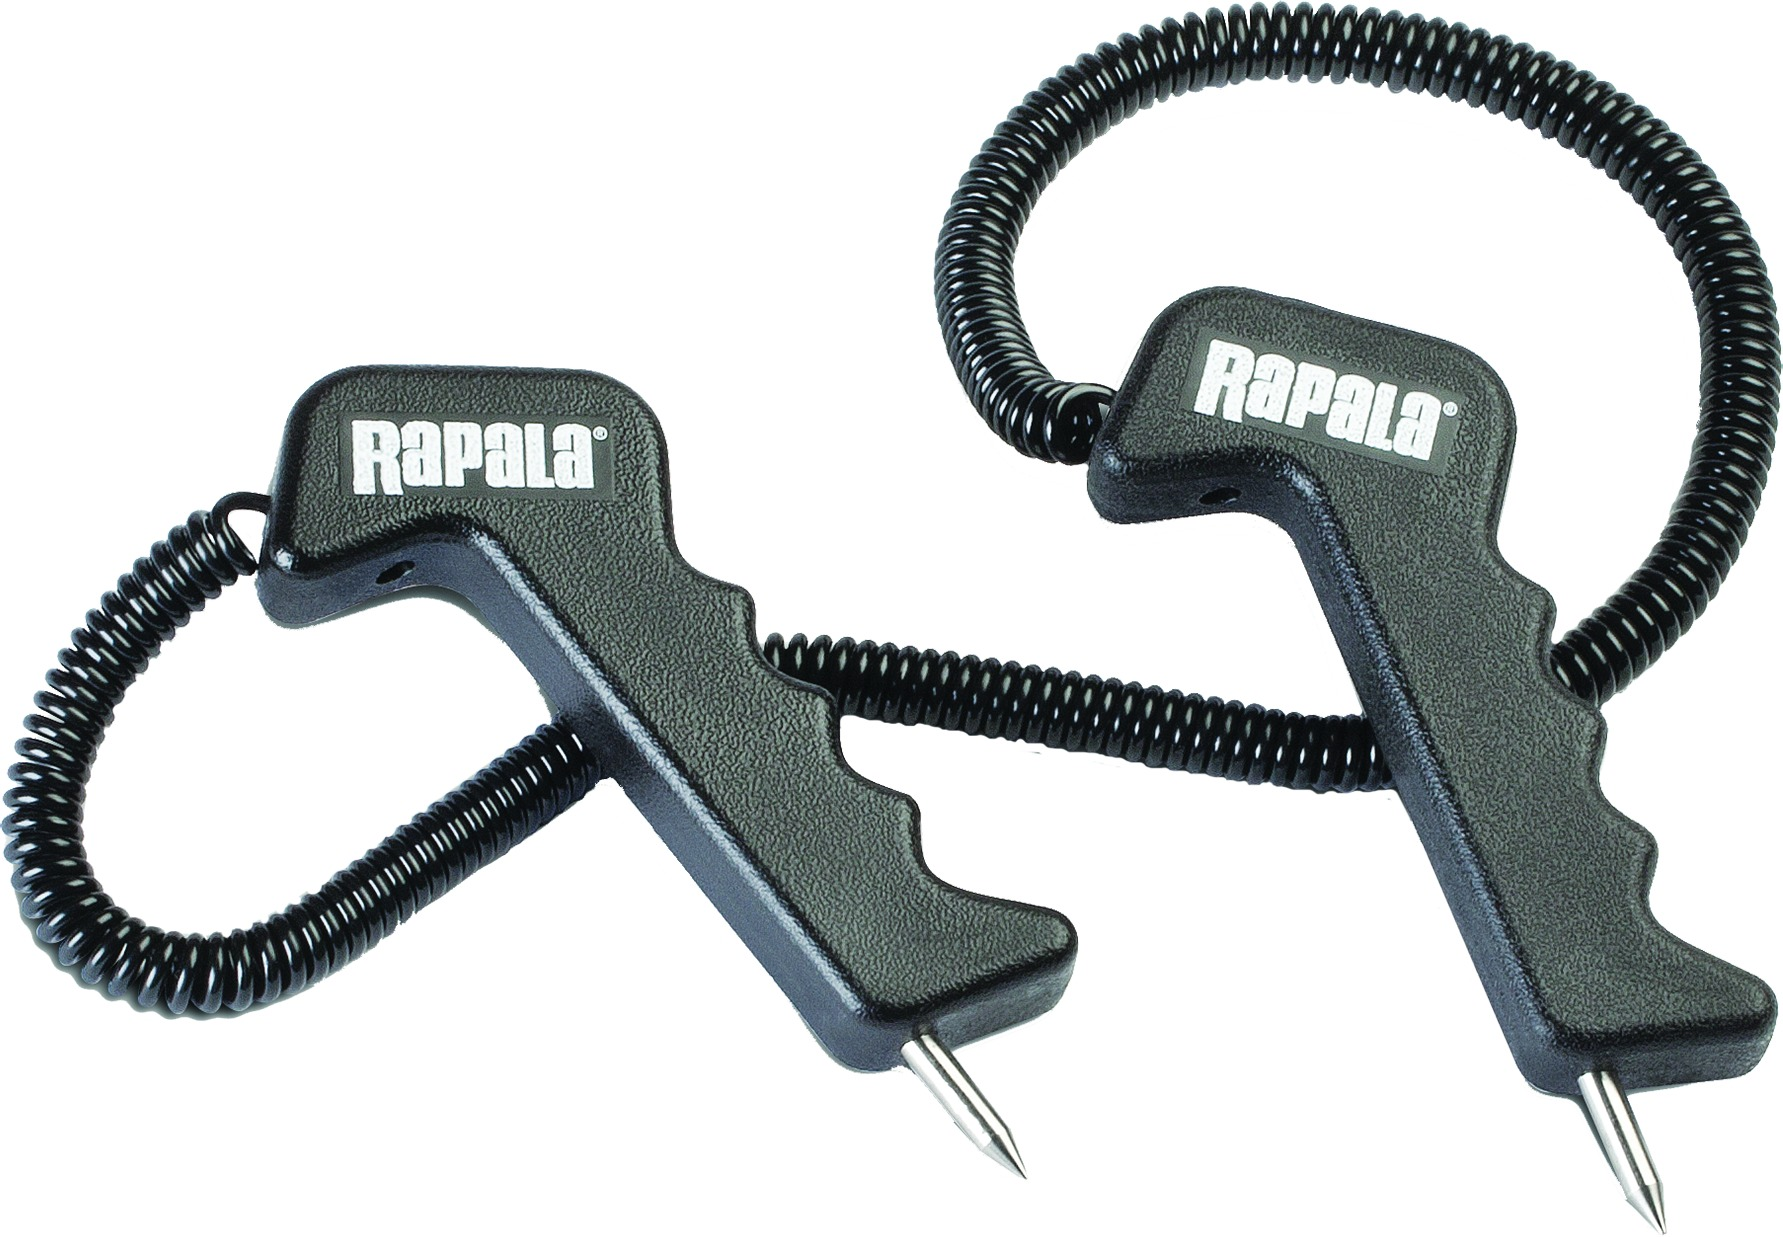 Rapala Ice Safety Spikes